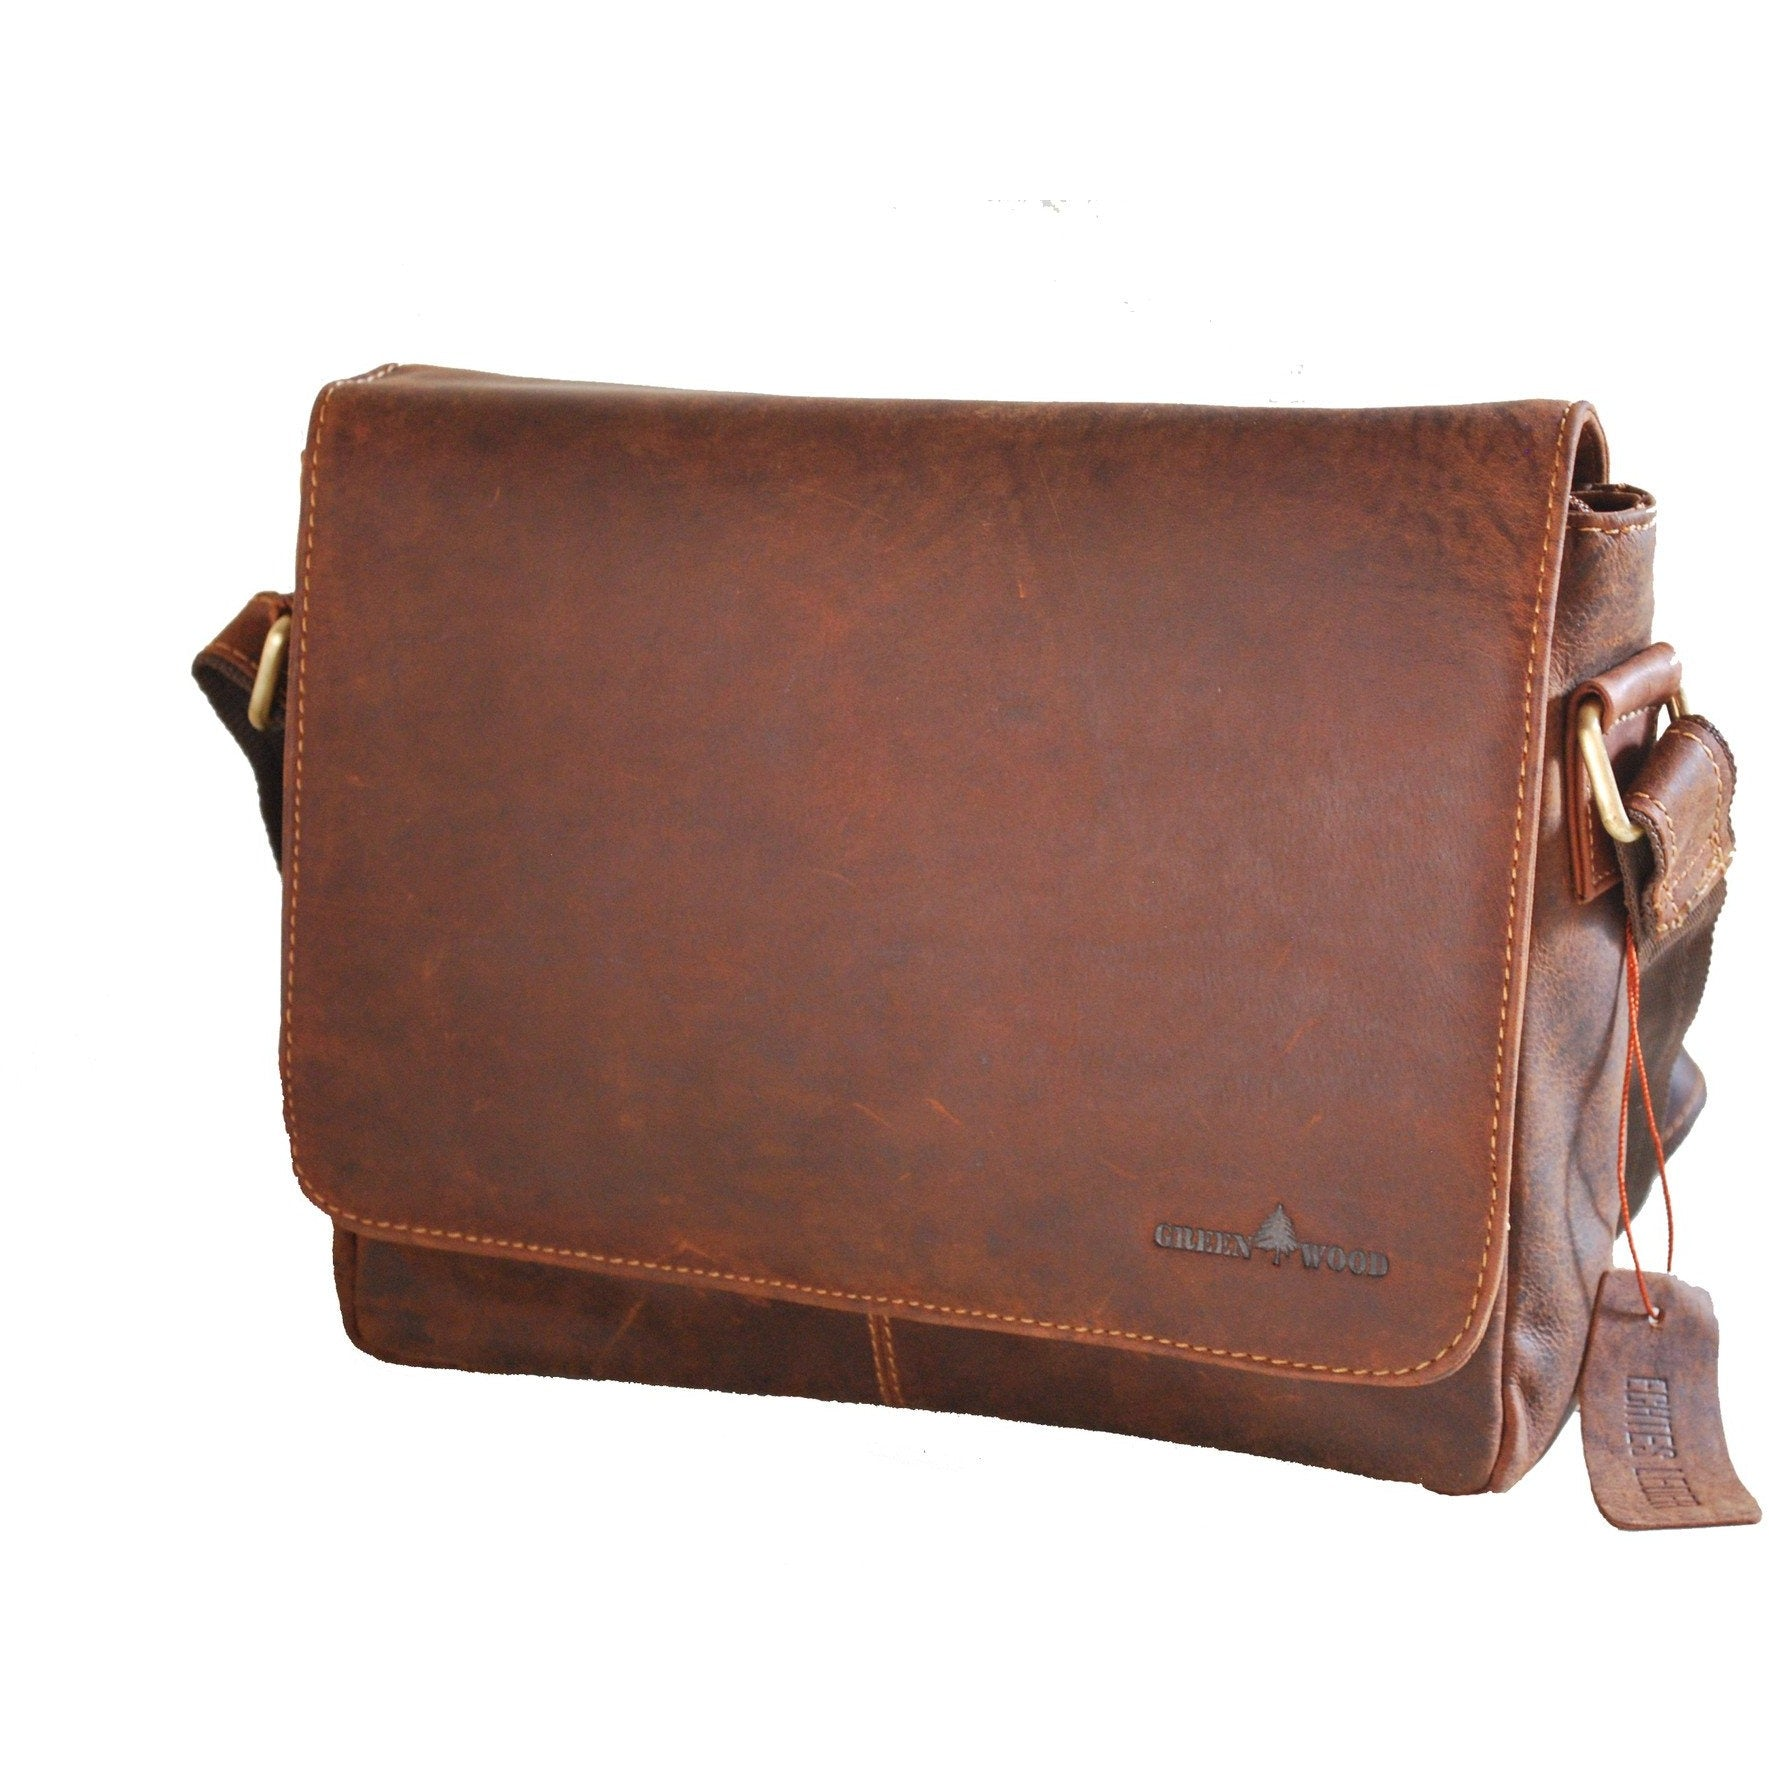 Smart Messenger Steven - Sandal - Leather Greenwood Bag | The Greenwood Leather Online Shop Australia